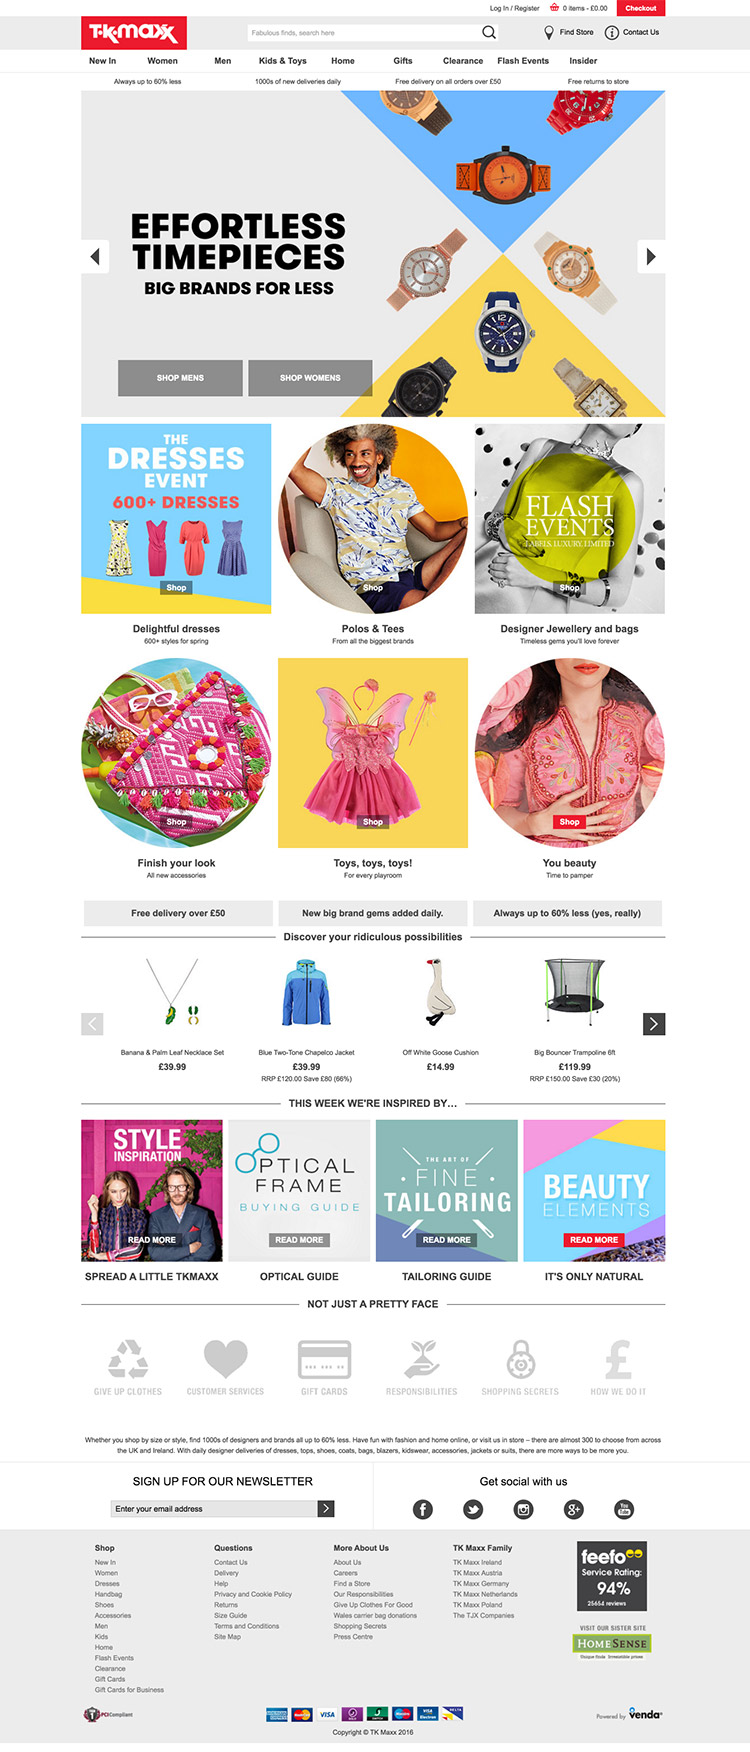 TK Maxx Homepage Design